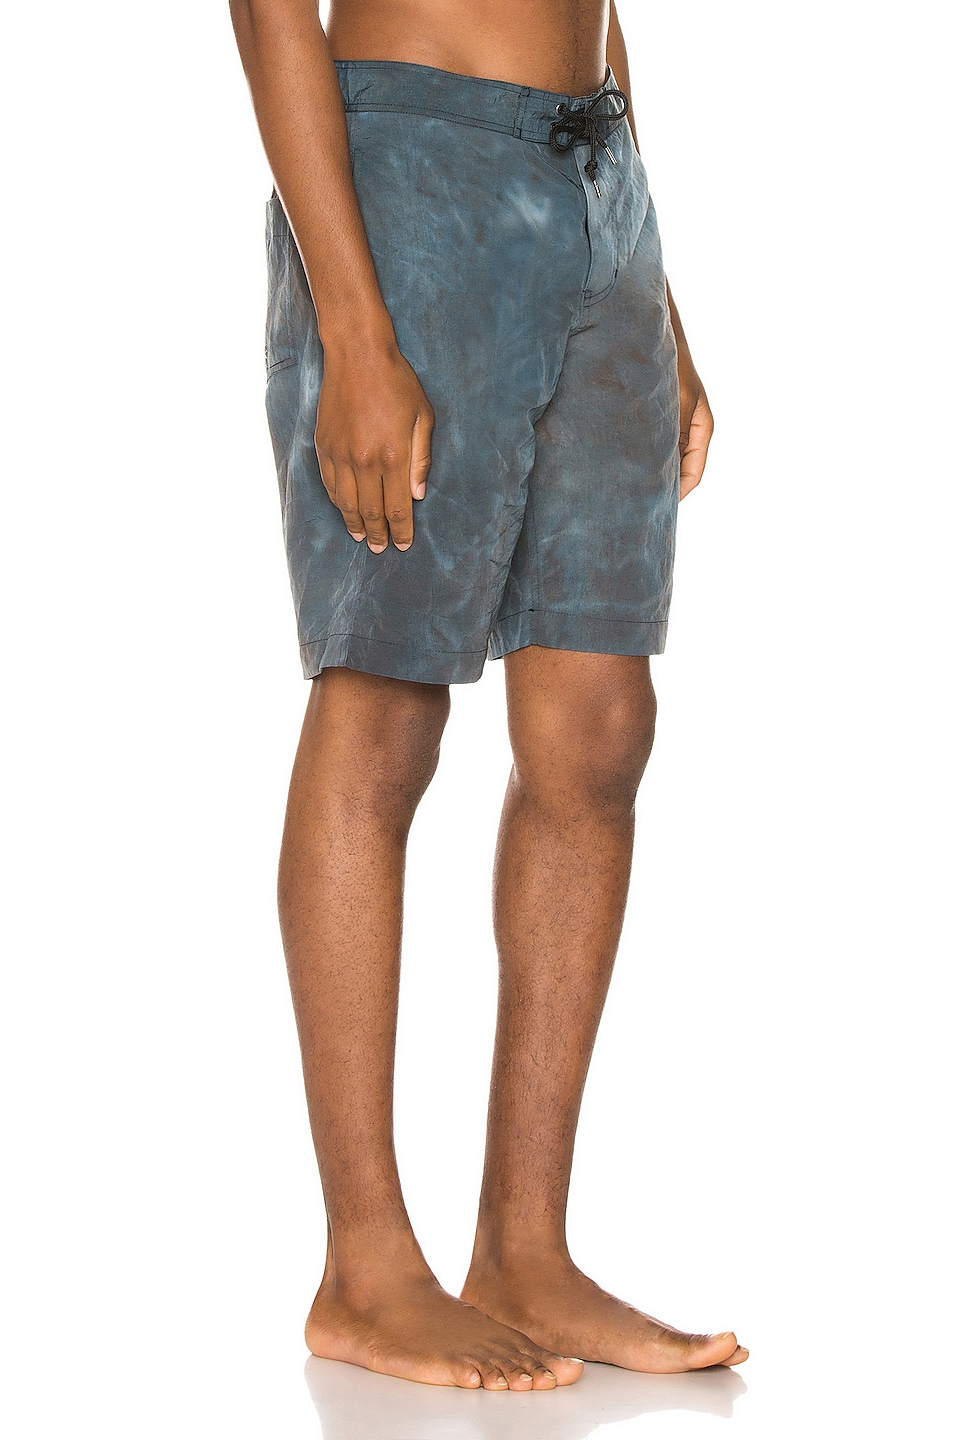 outlet JOHN ELLIOTT Solar Board Shorts Teal Tie Dye